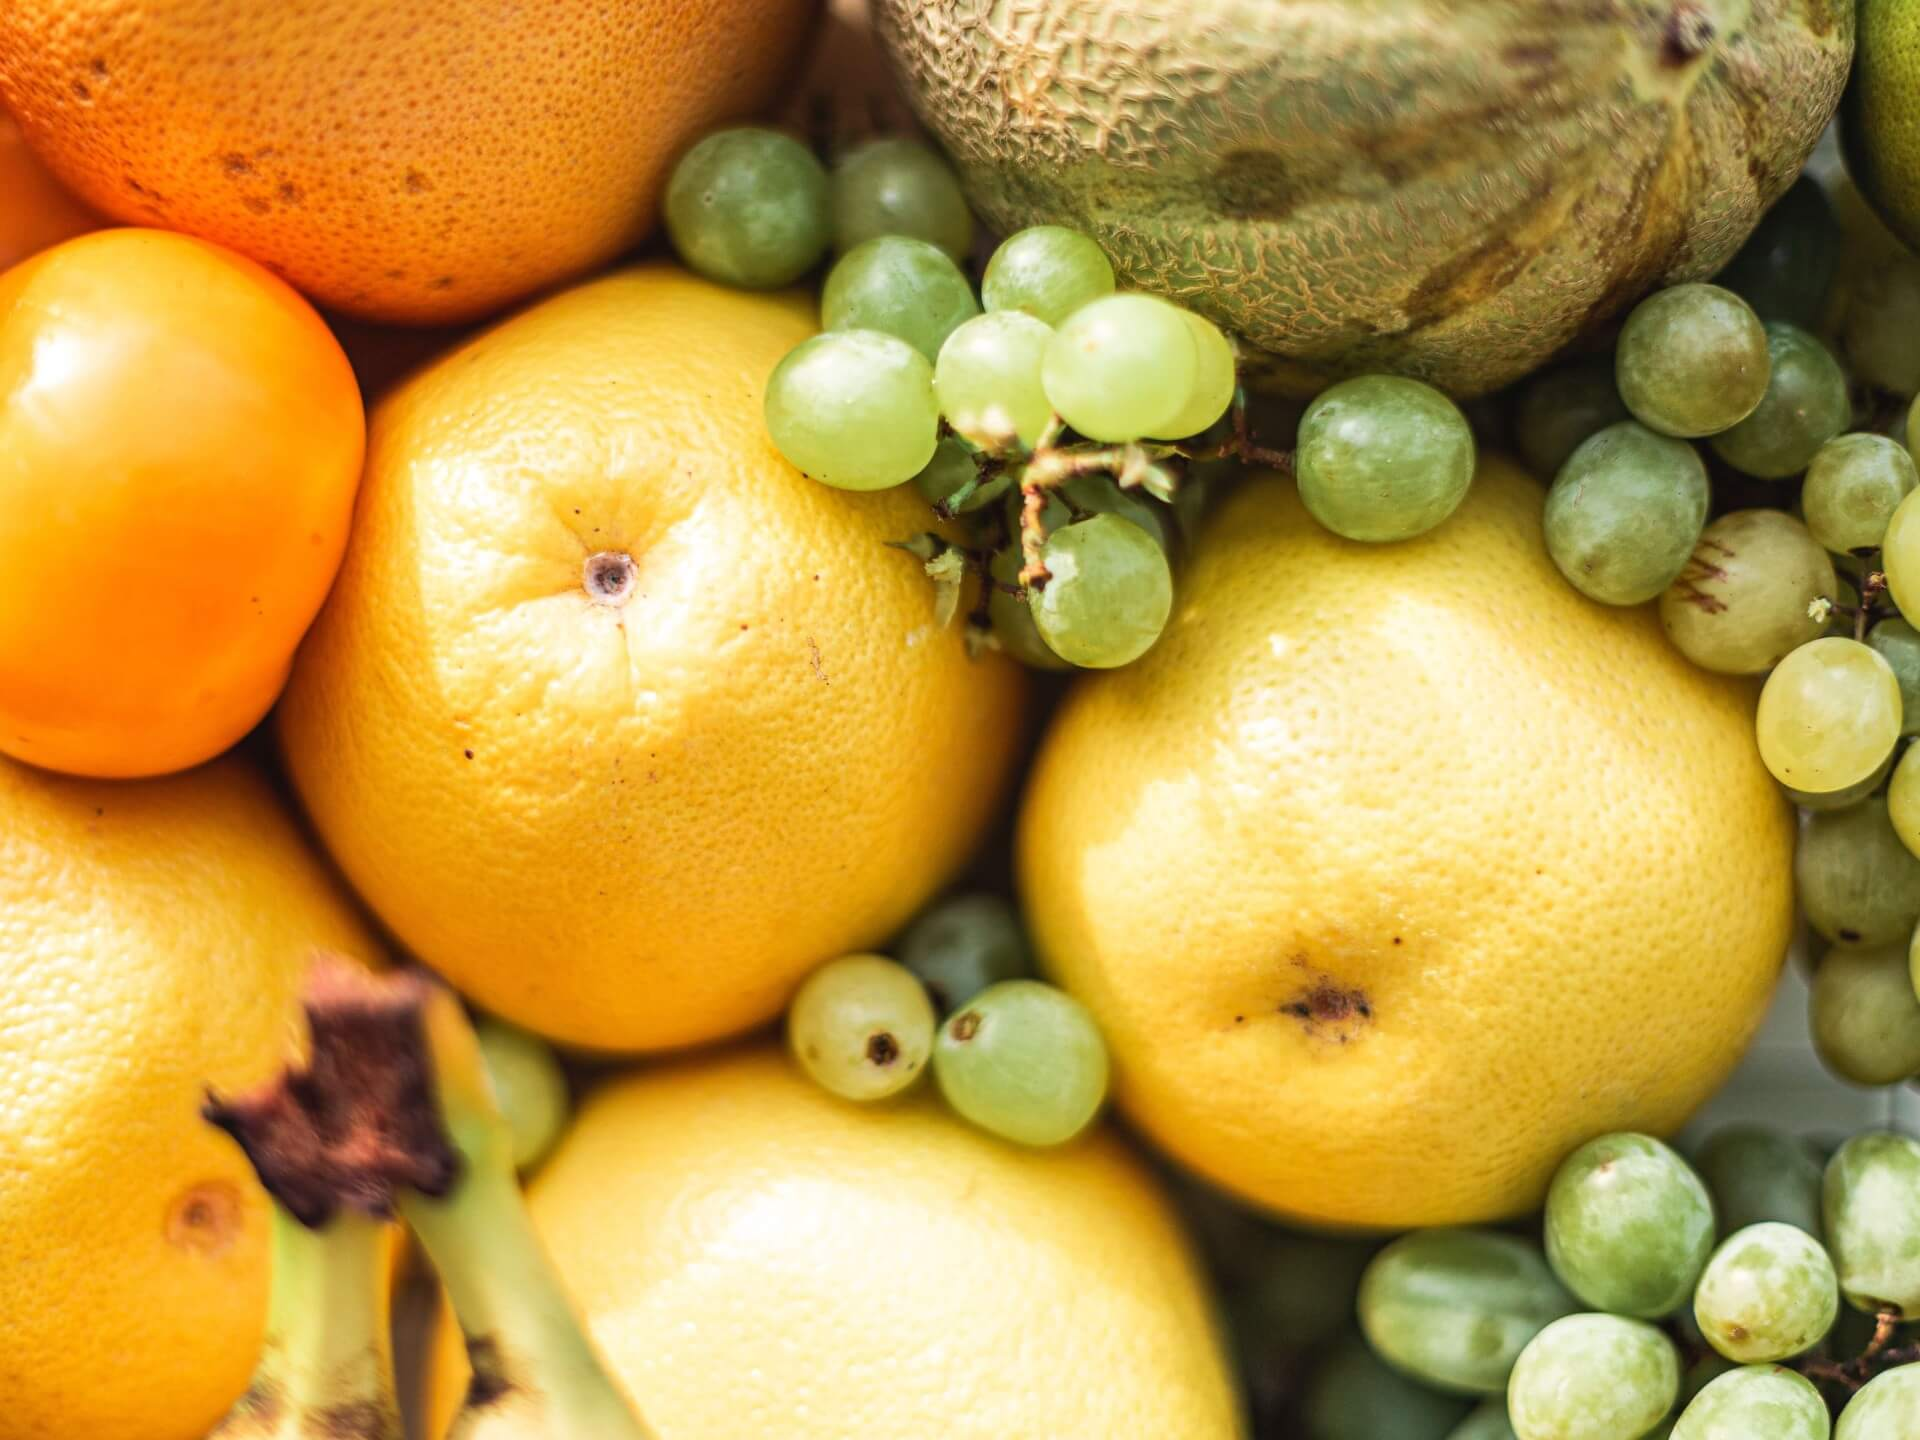 Photo of grapefruit, grapes, oranges, and melons